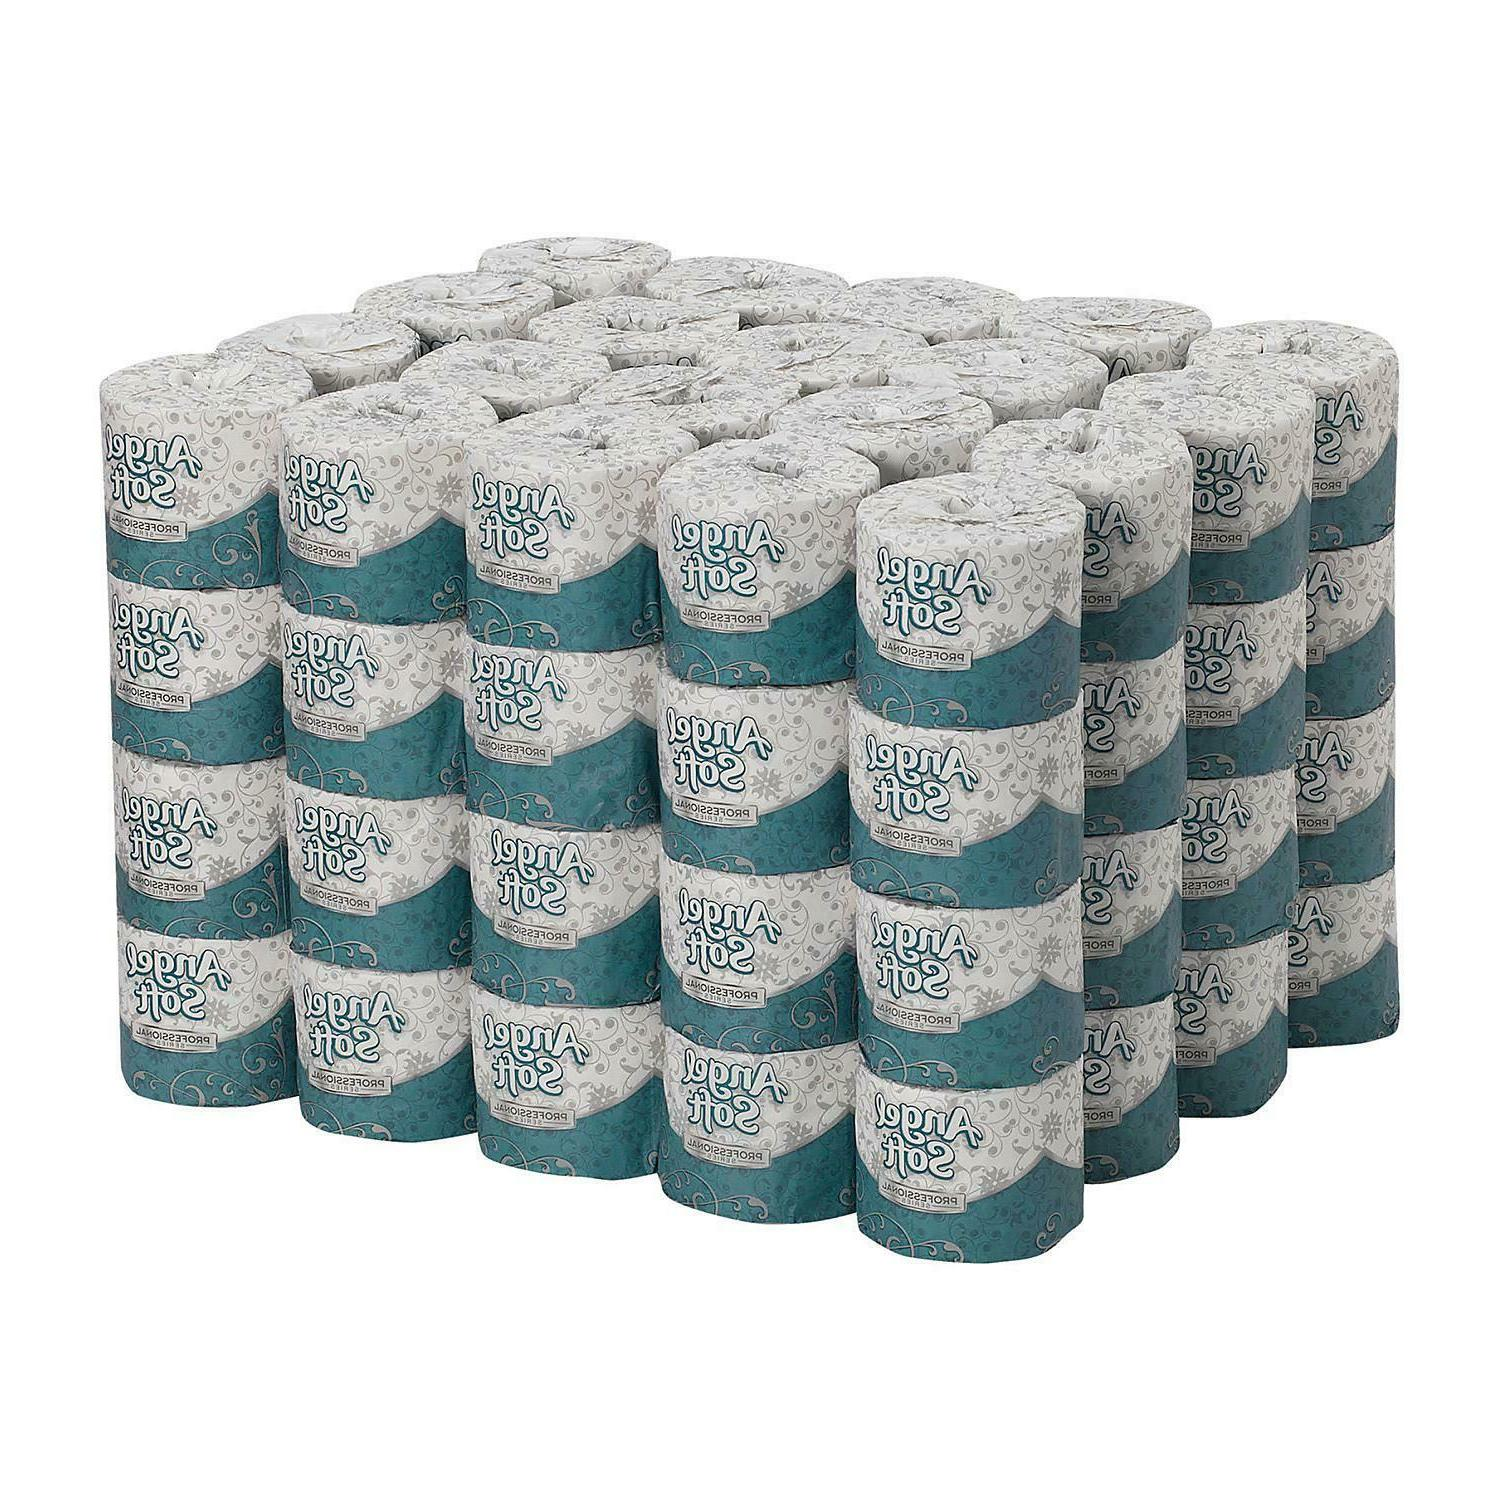 Angel Soft Professional Series 2-Ply Toilet Paper, 450 Sheet